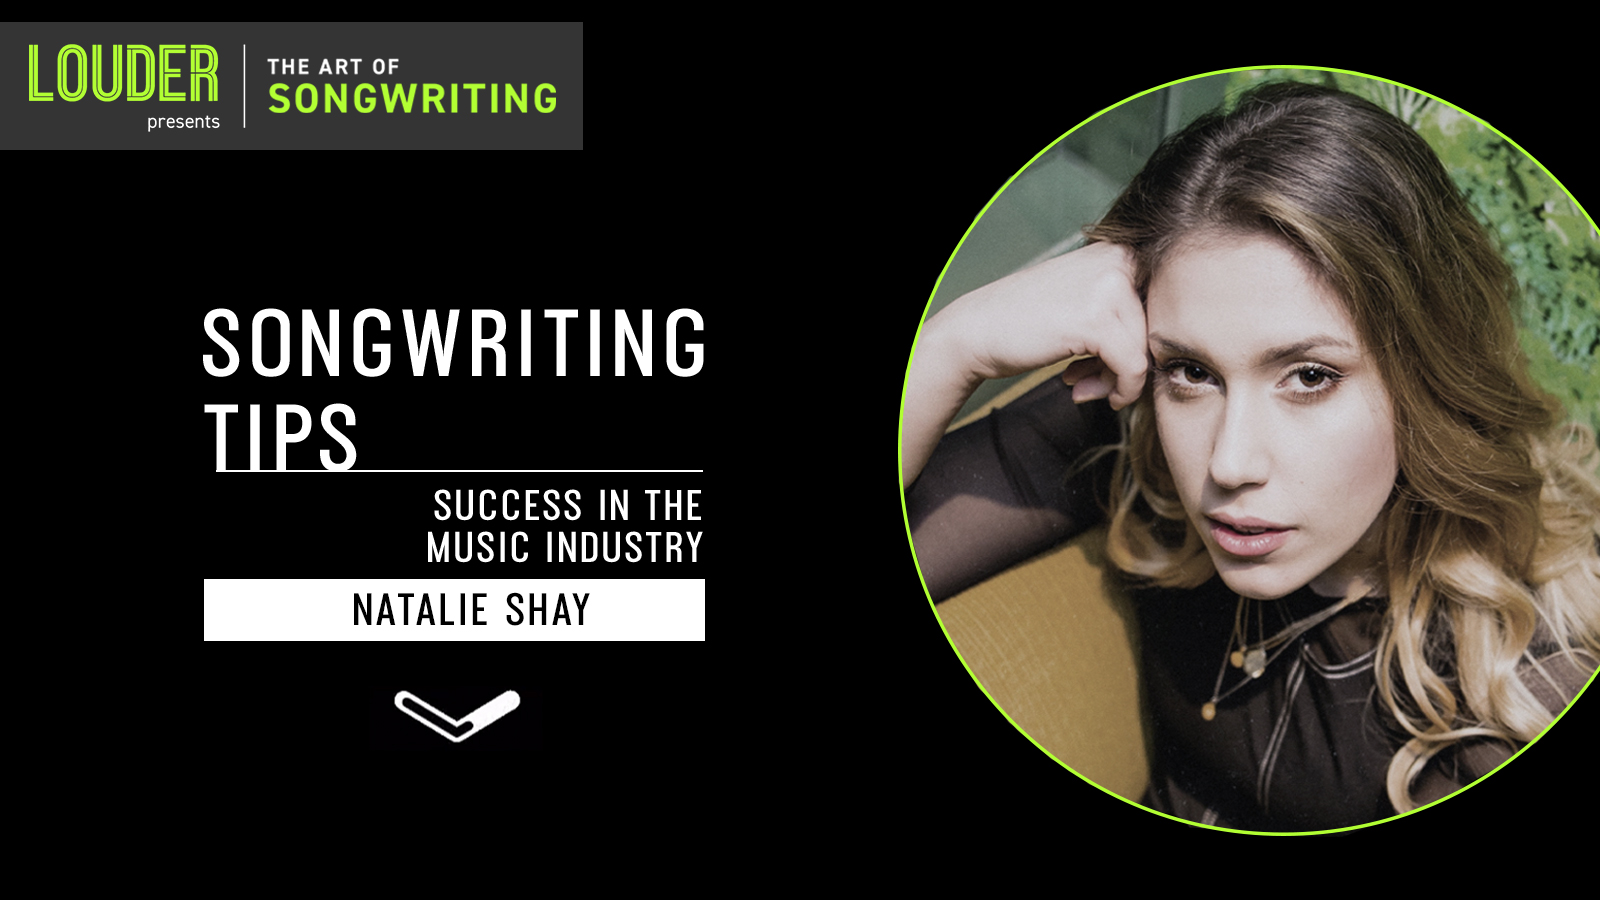 Natalie Shay on Writing Songs in a Changing Music Industry